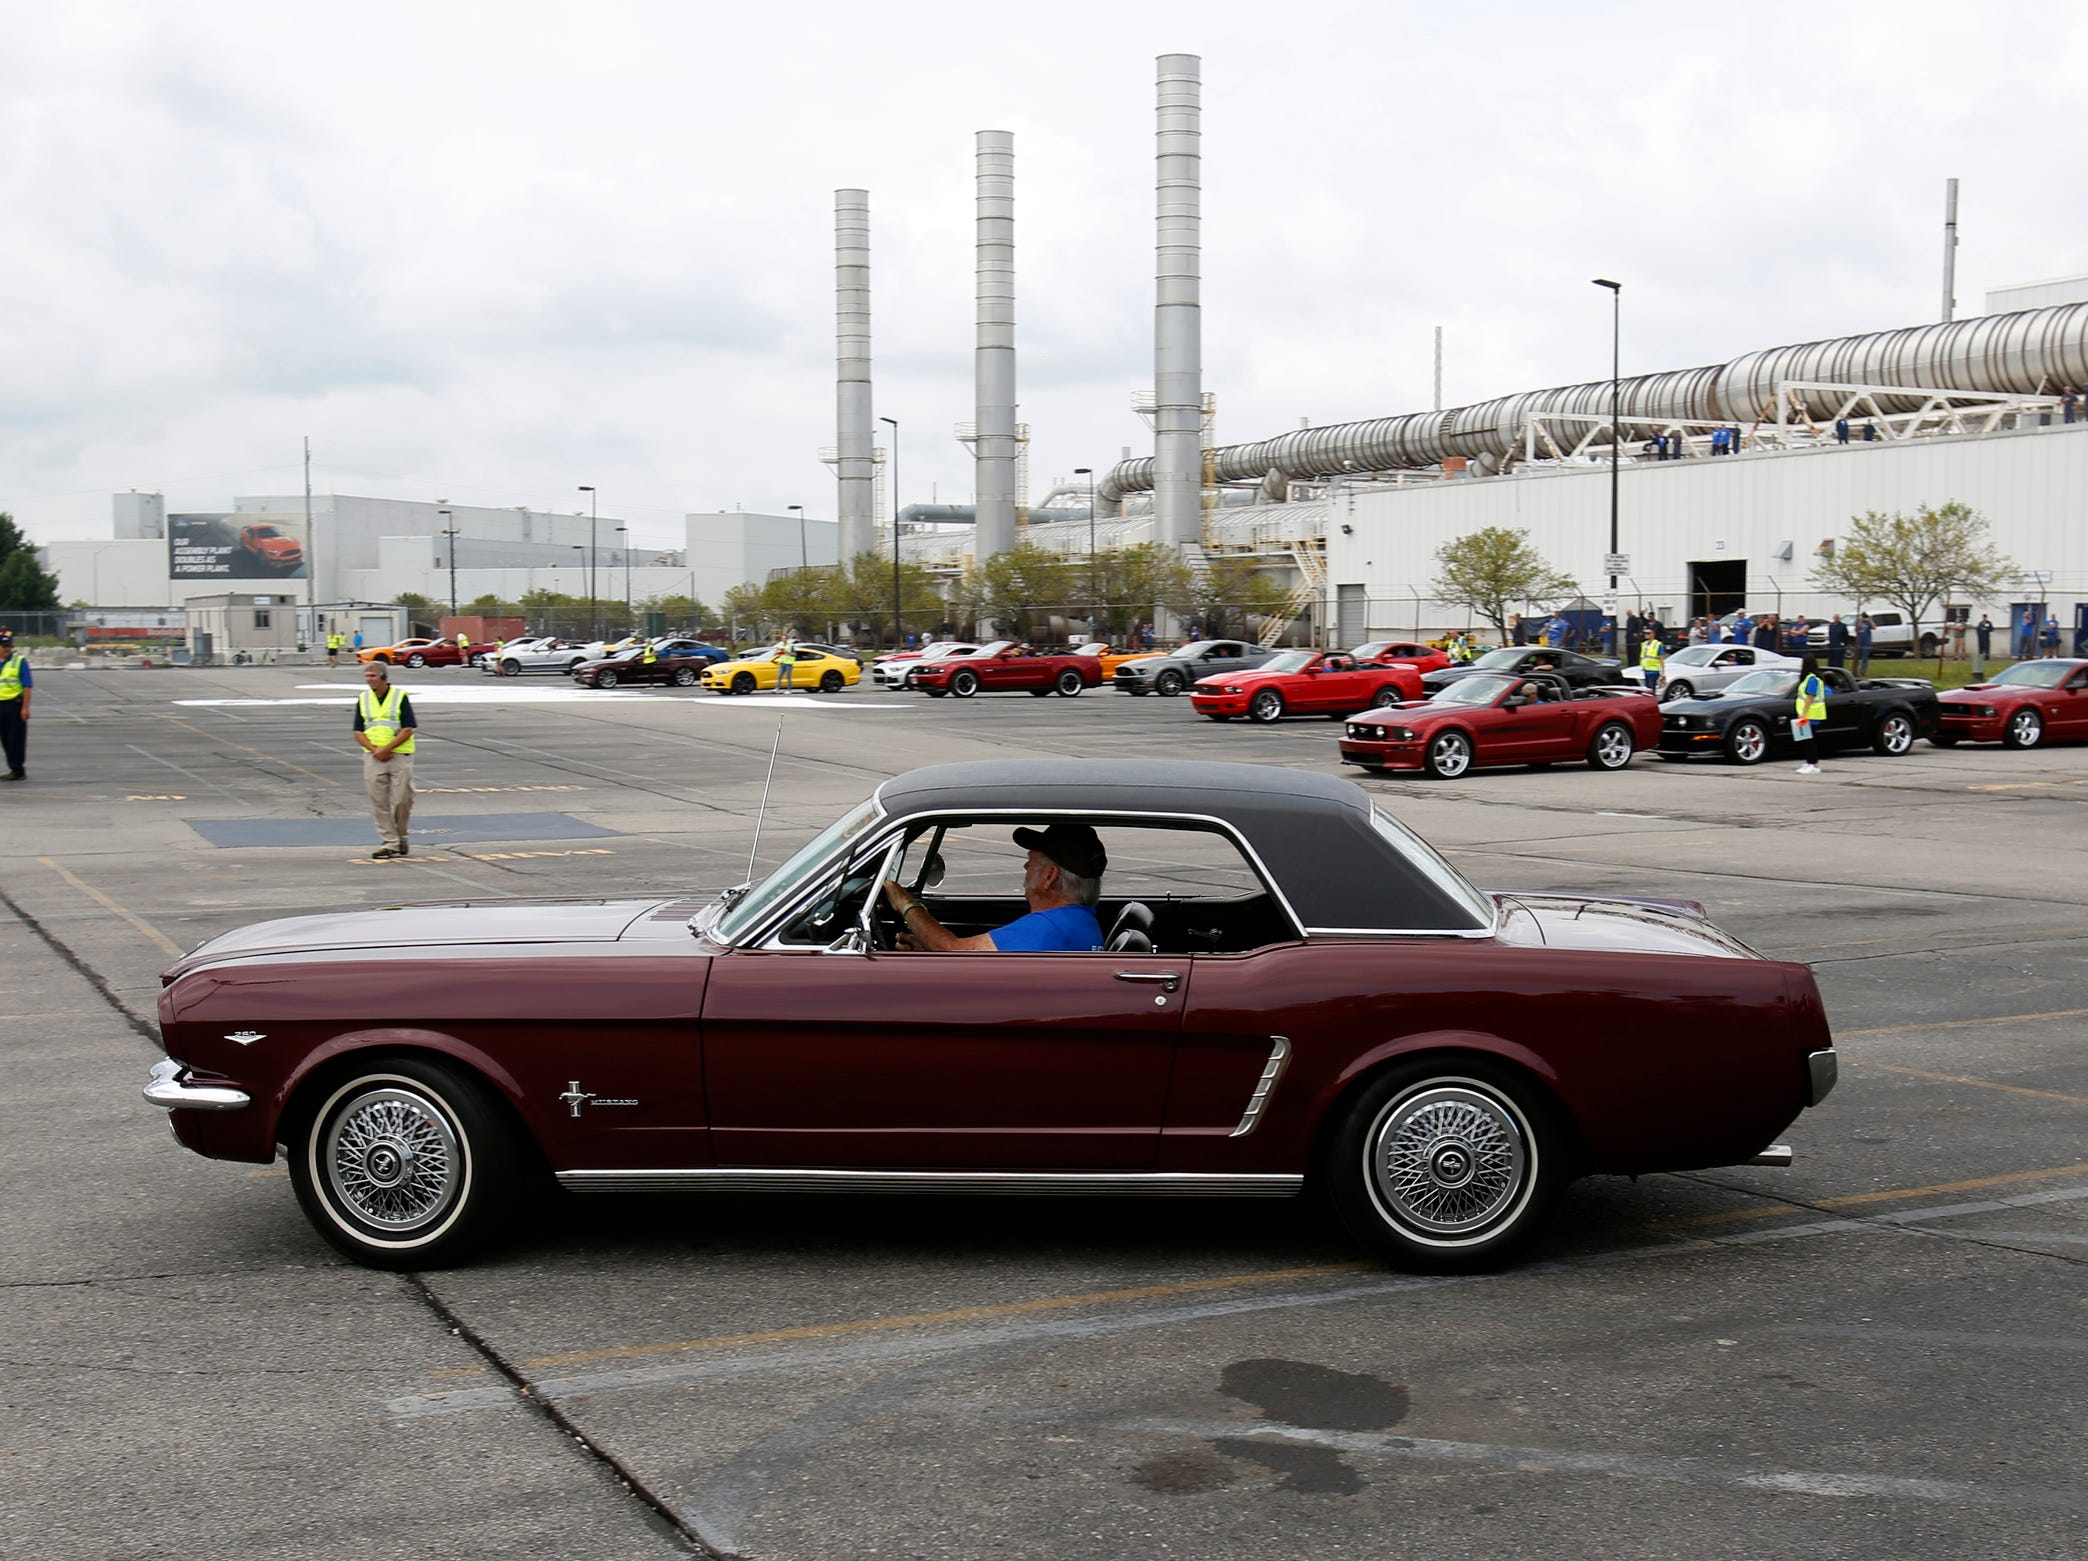 A 1964.5 Ford Mustang makes its way across the parking lot to start the formation of the number 10 million during the celebration of the 10 millionth Mustang at the Ford Motor Company Flat Rock Assembly Plant in Flat Rock on Wednesday, August 8, 2018